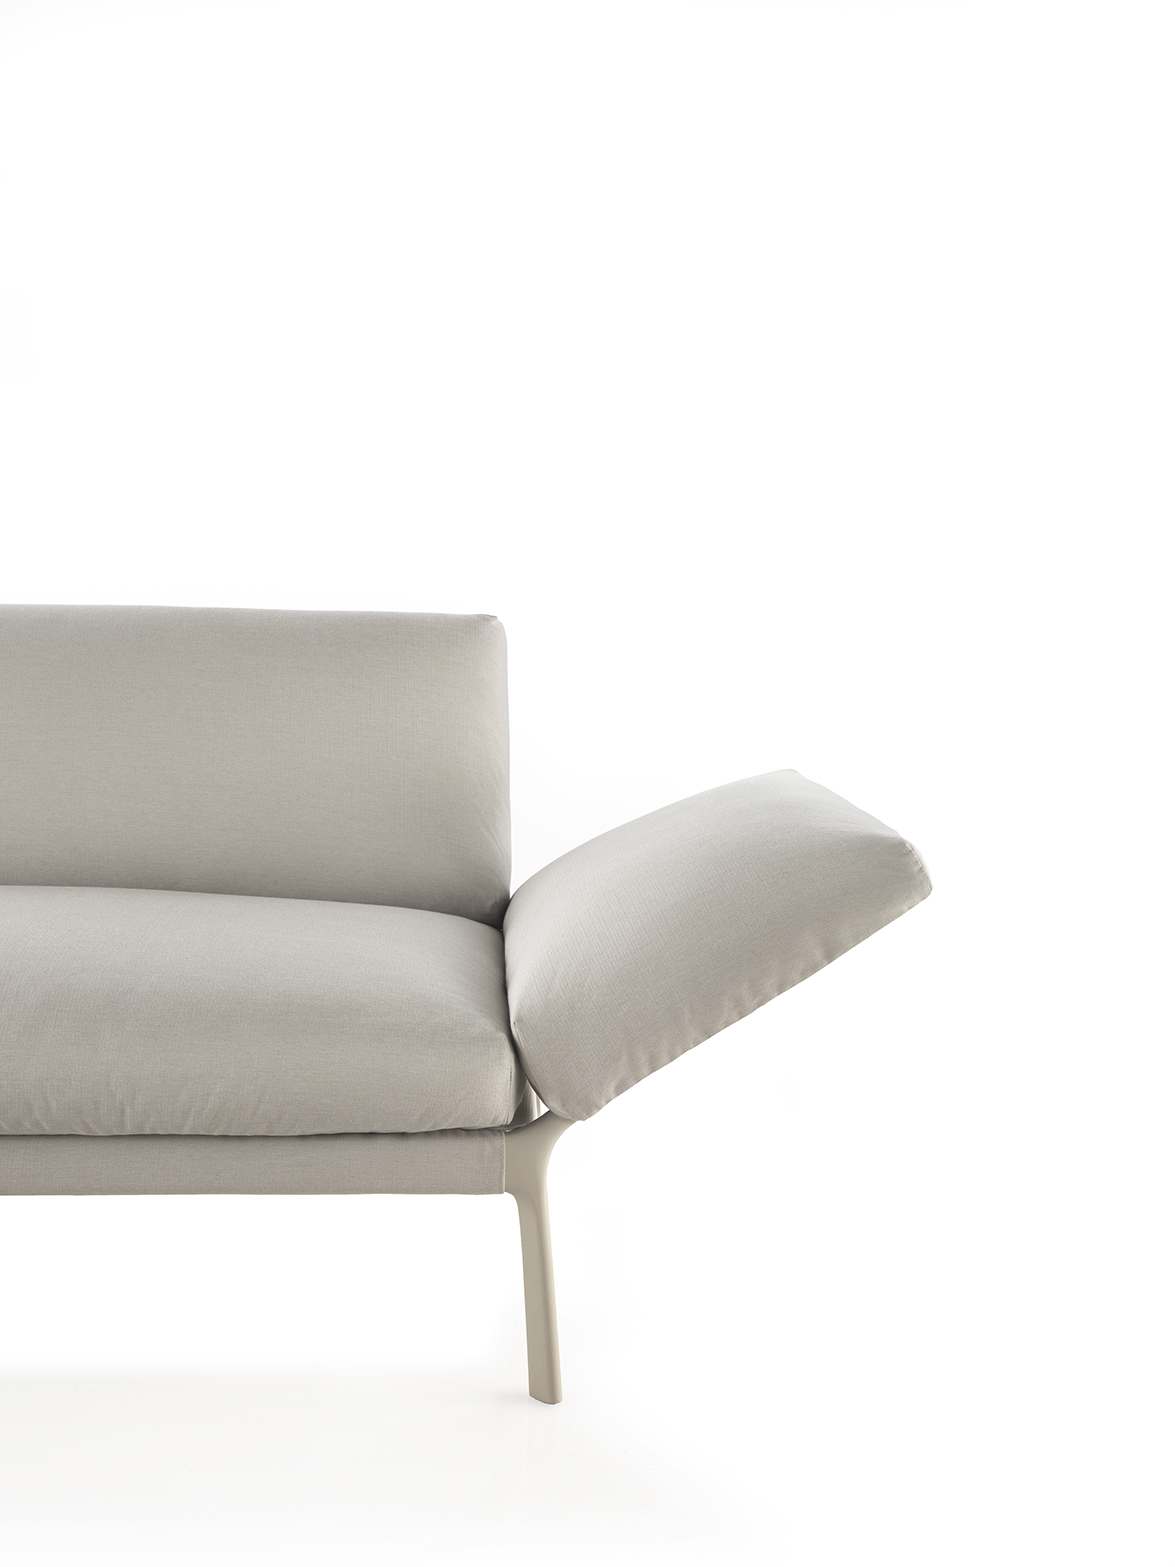 Livit sofa by Lievore Altherr Molina 03